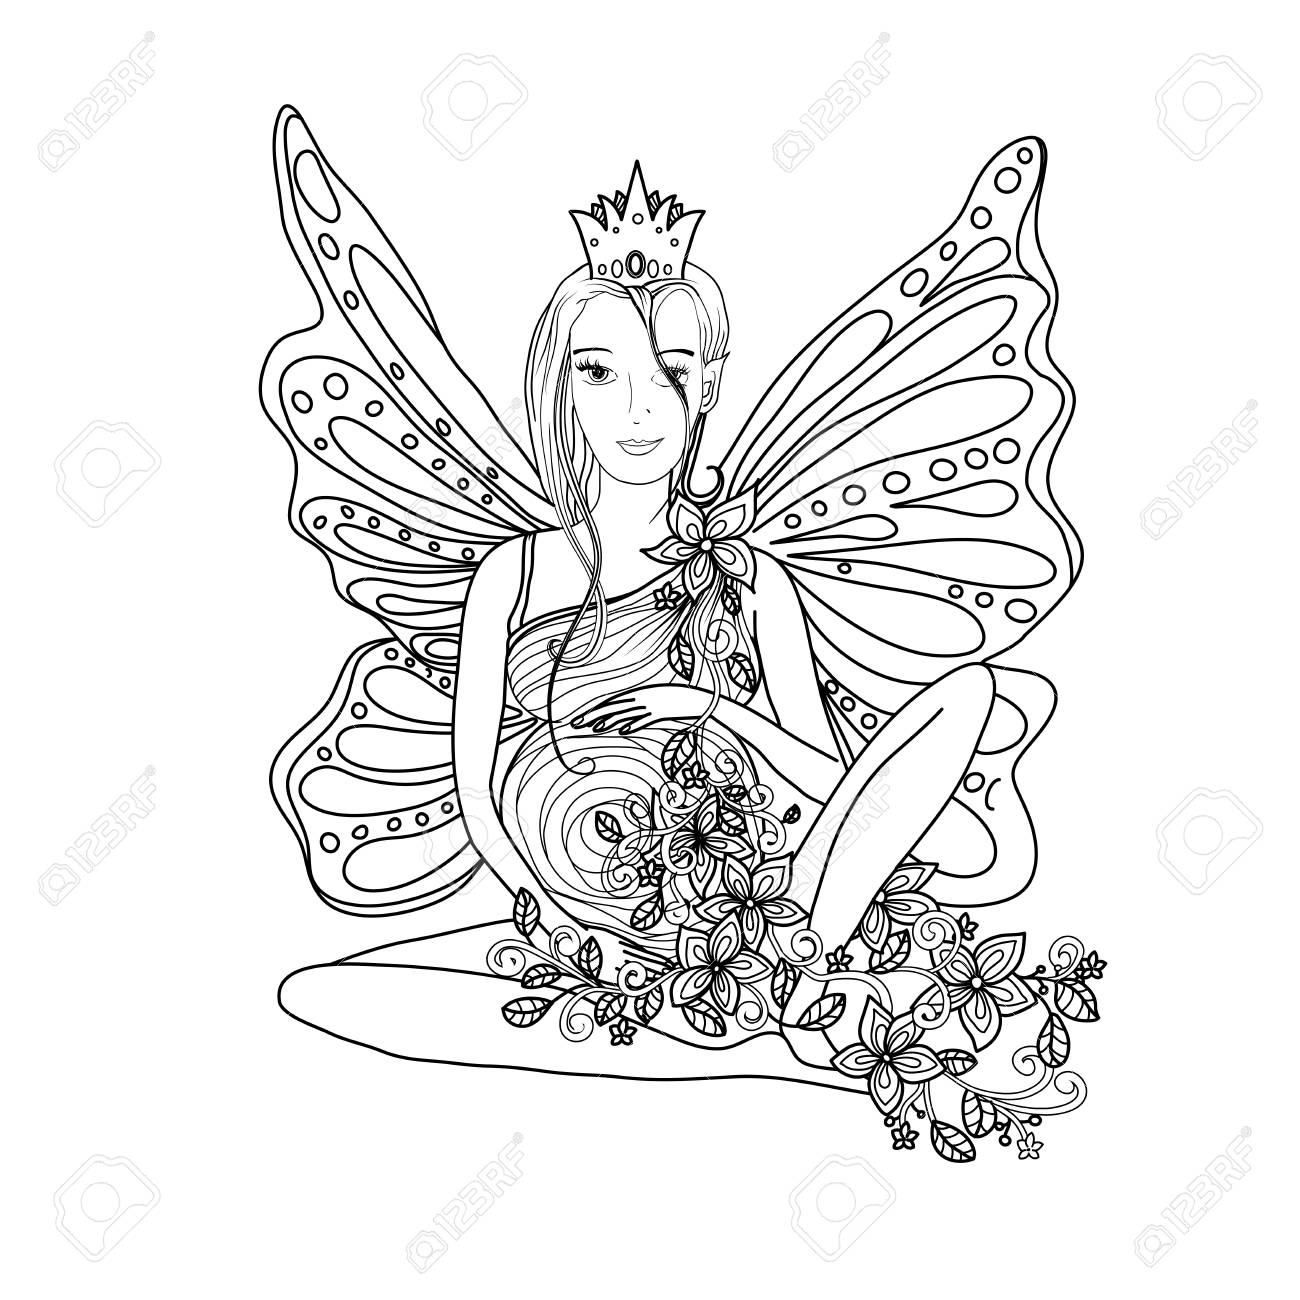 Adult Coloring Book Page With Fairy Pregnant Lady Butterfly Wings Stock Vector